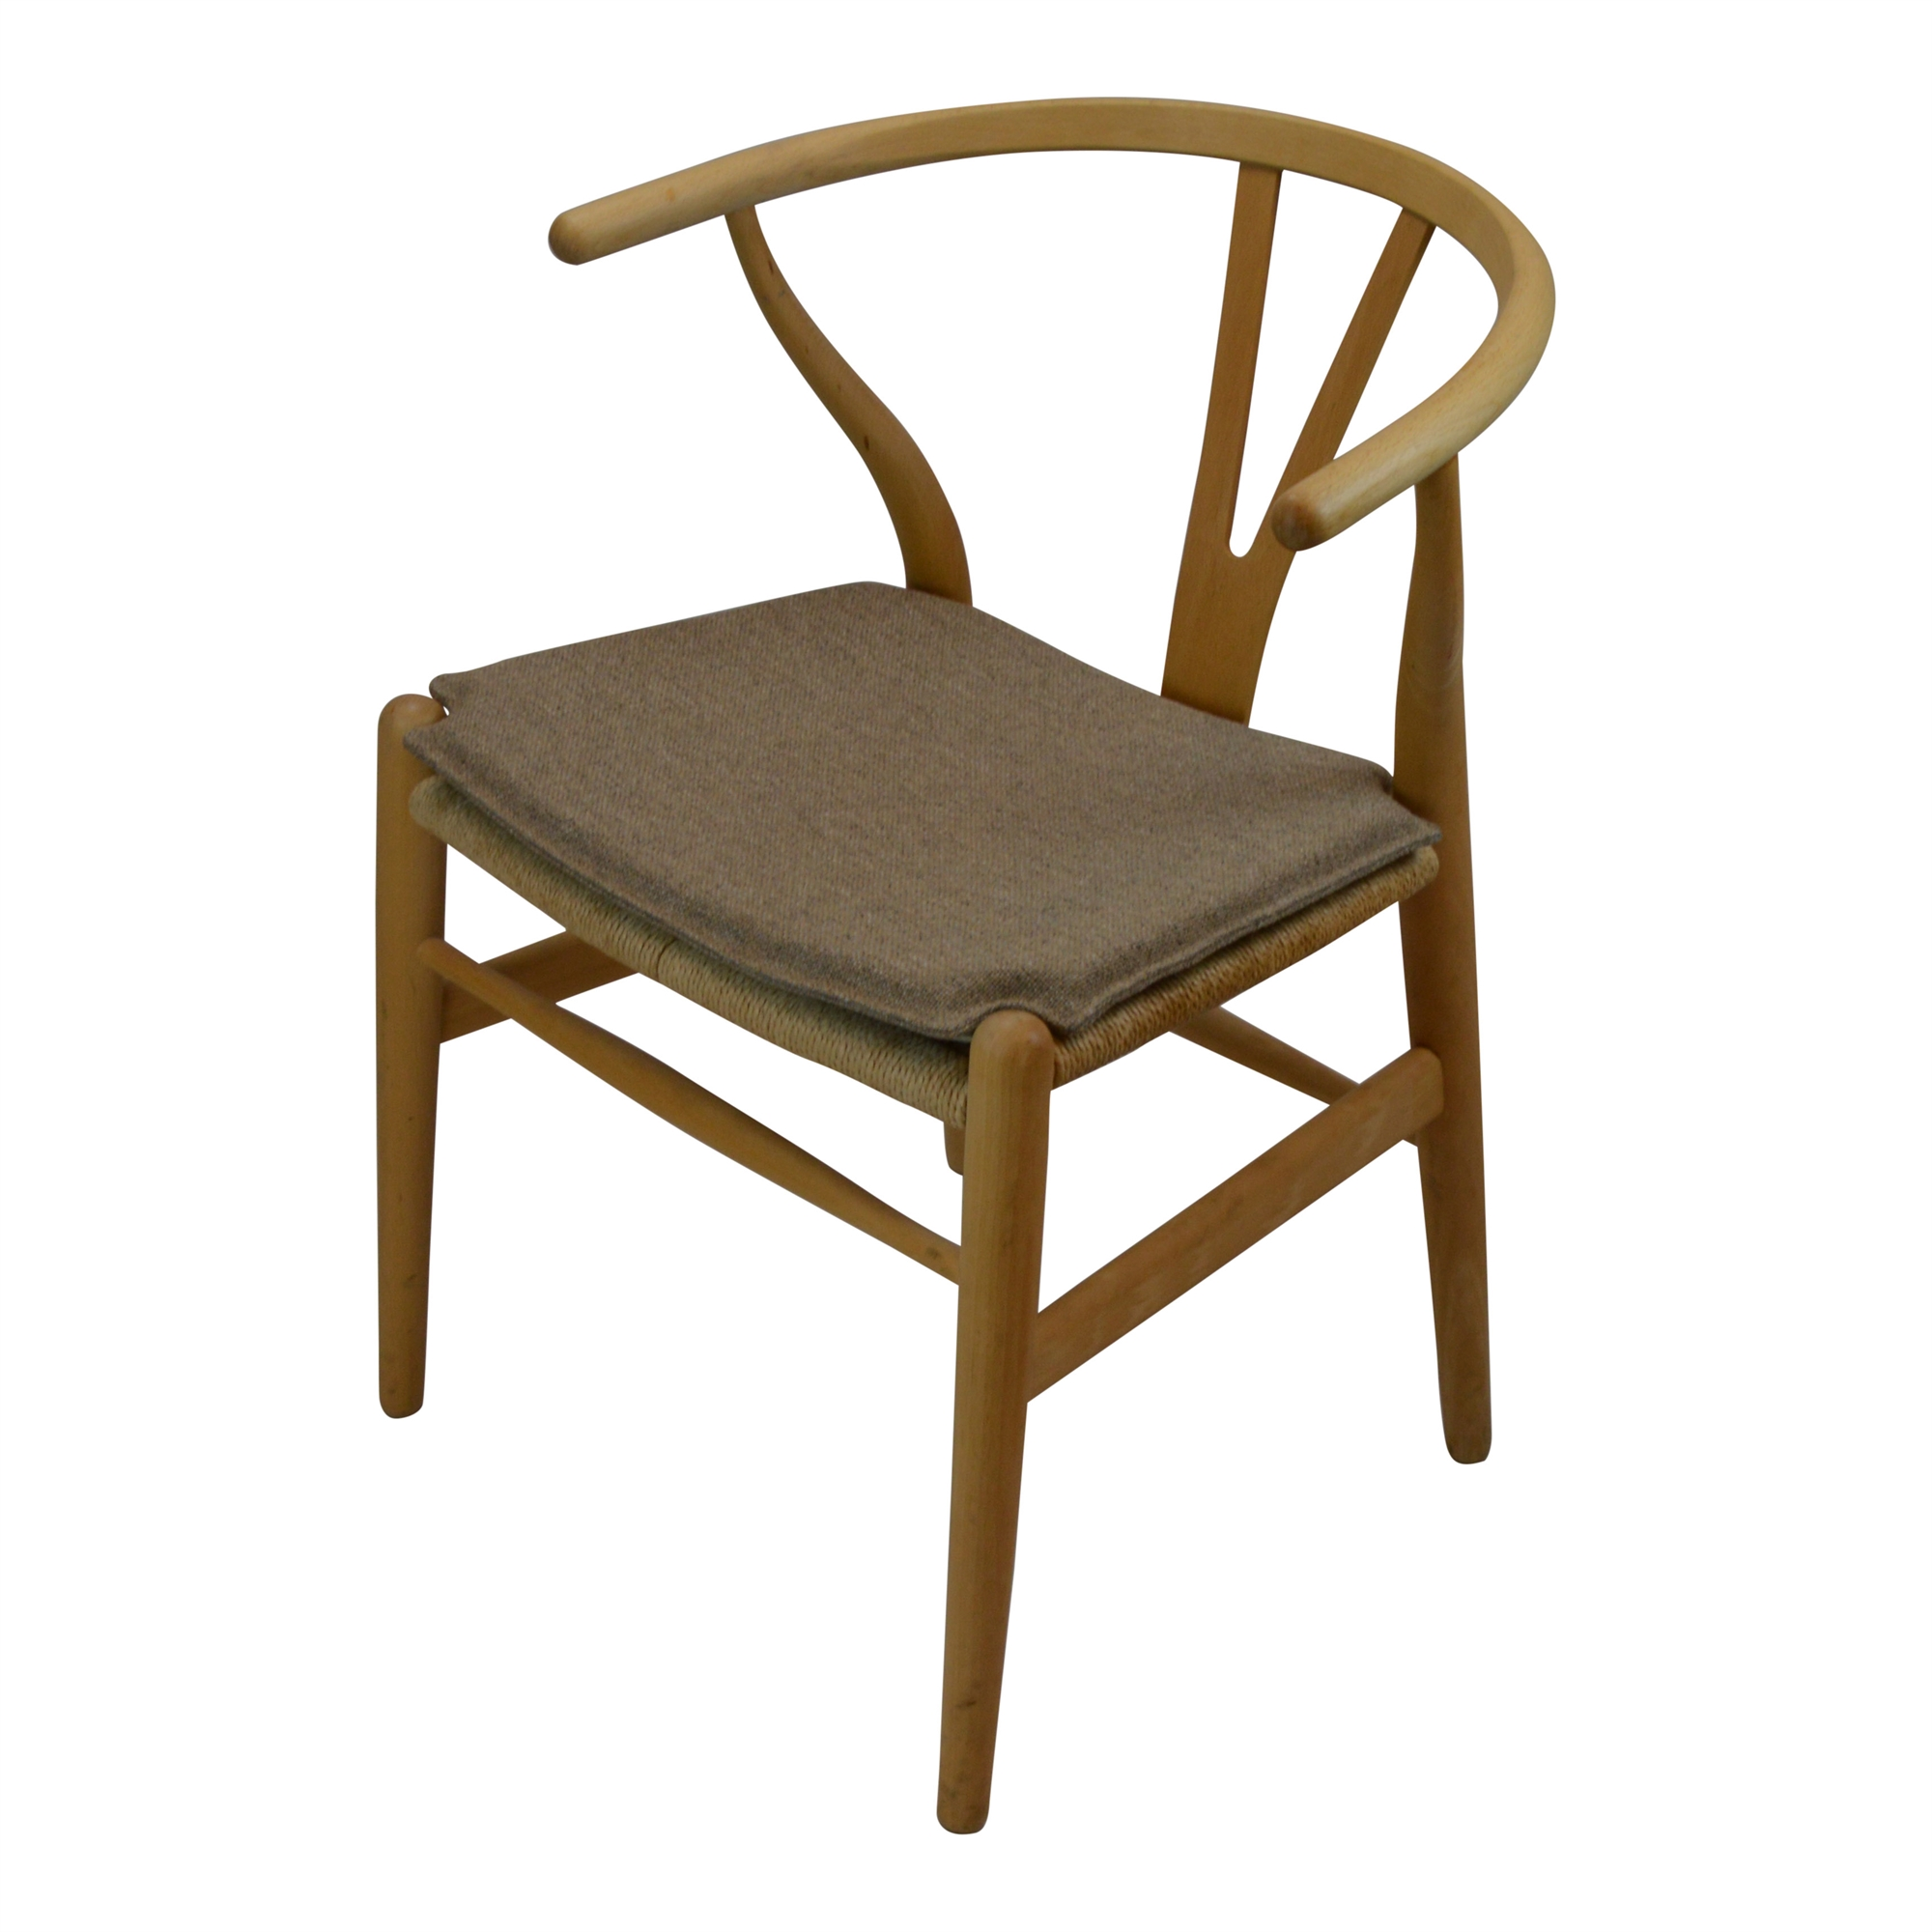 hans wegner chairs design within reach expensive office chair populære stol rzl49 promcoast